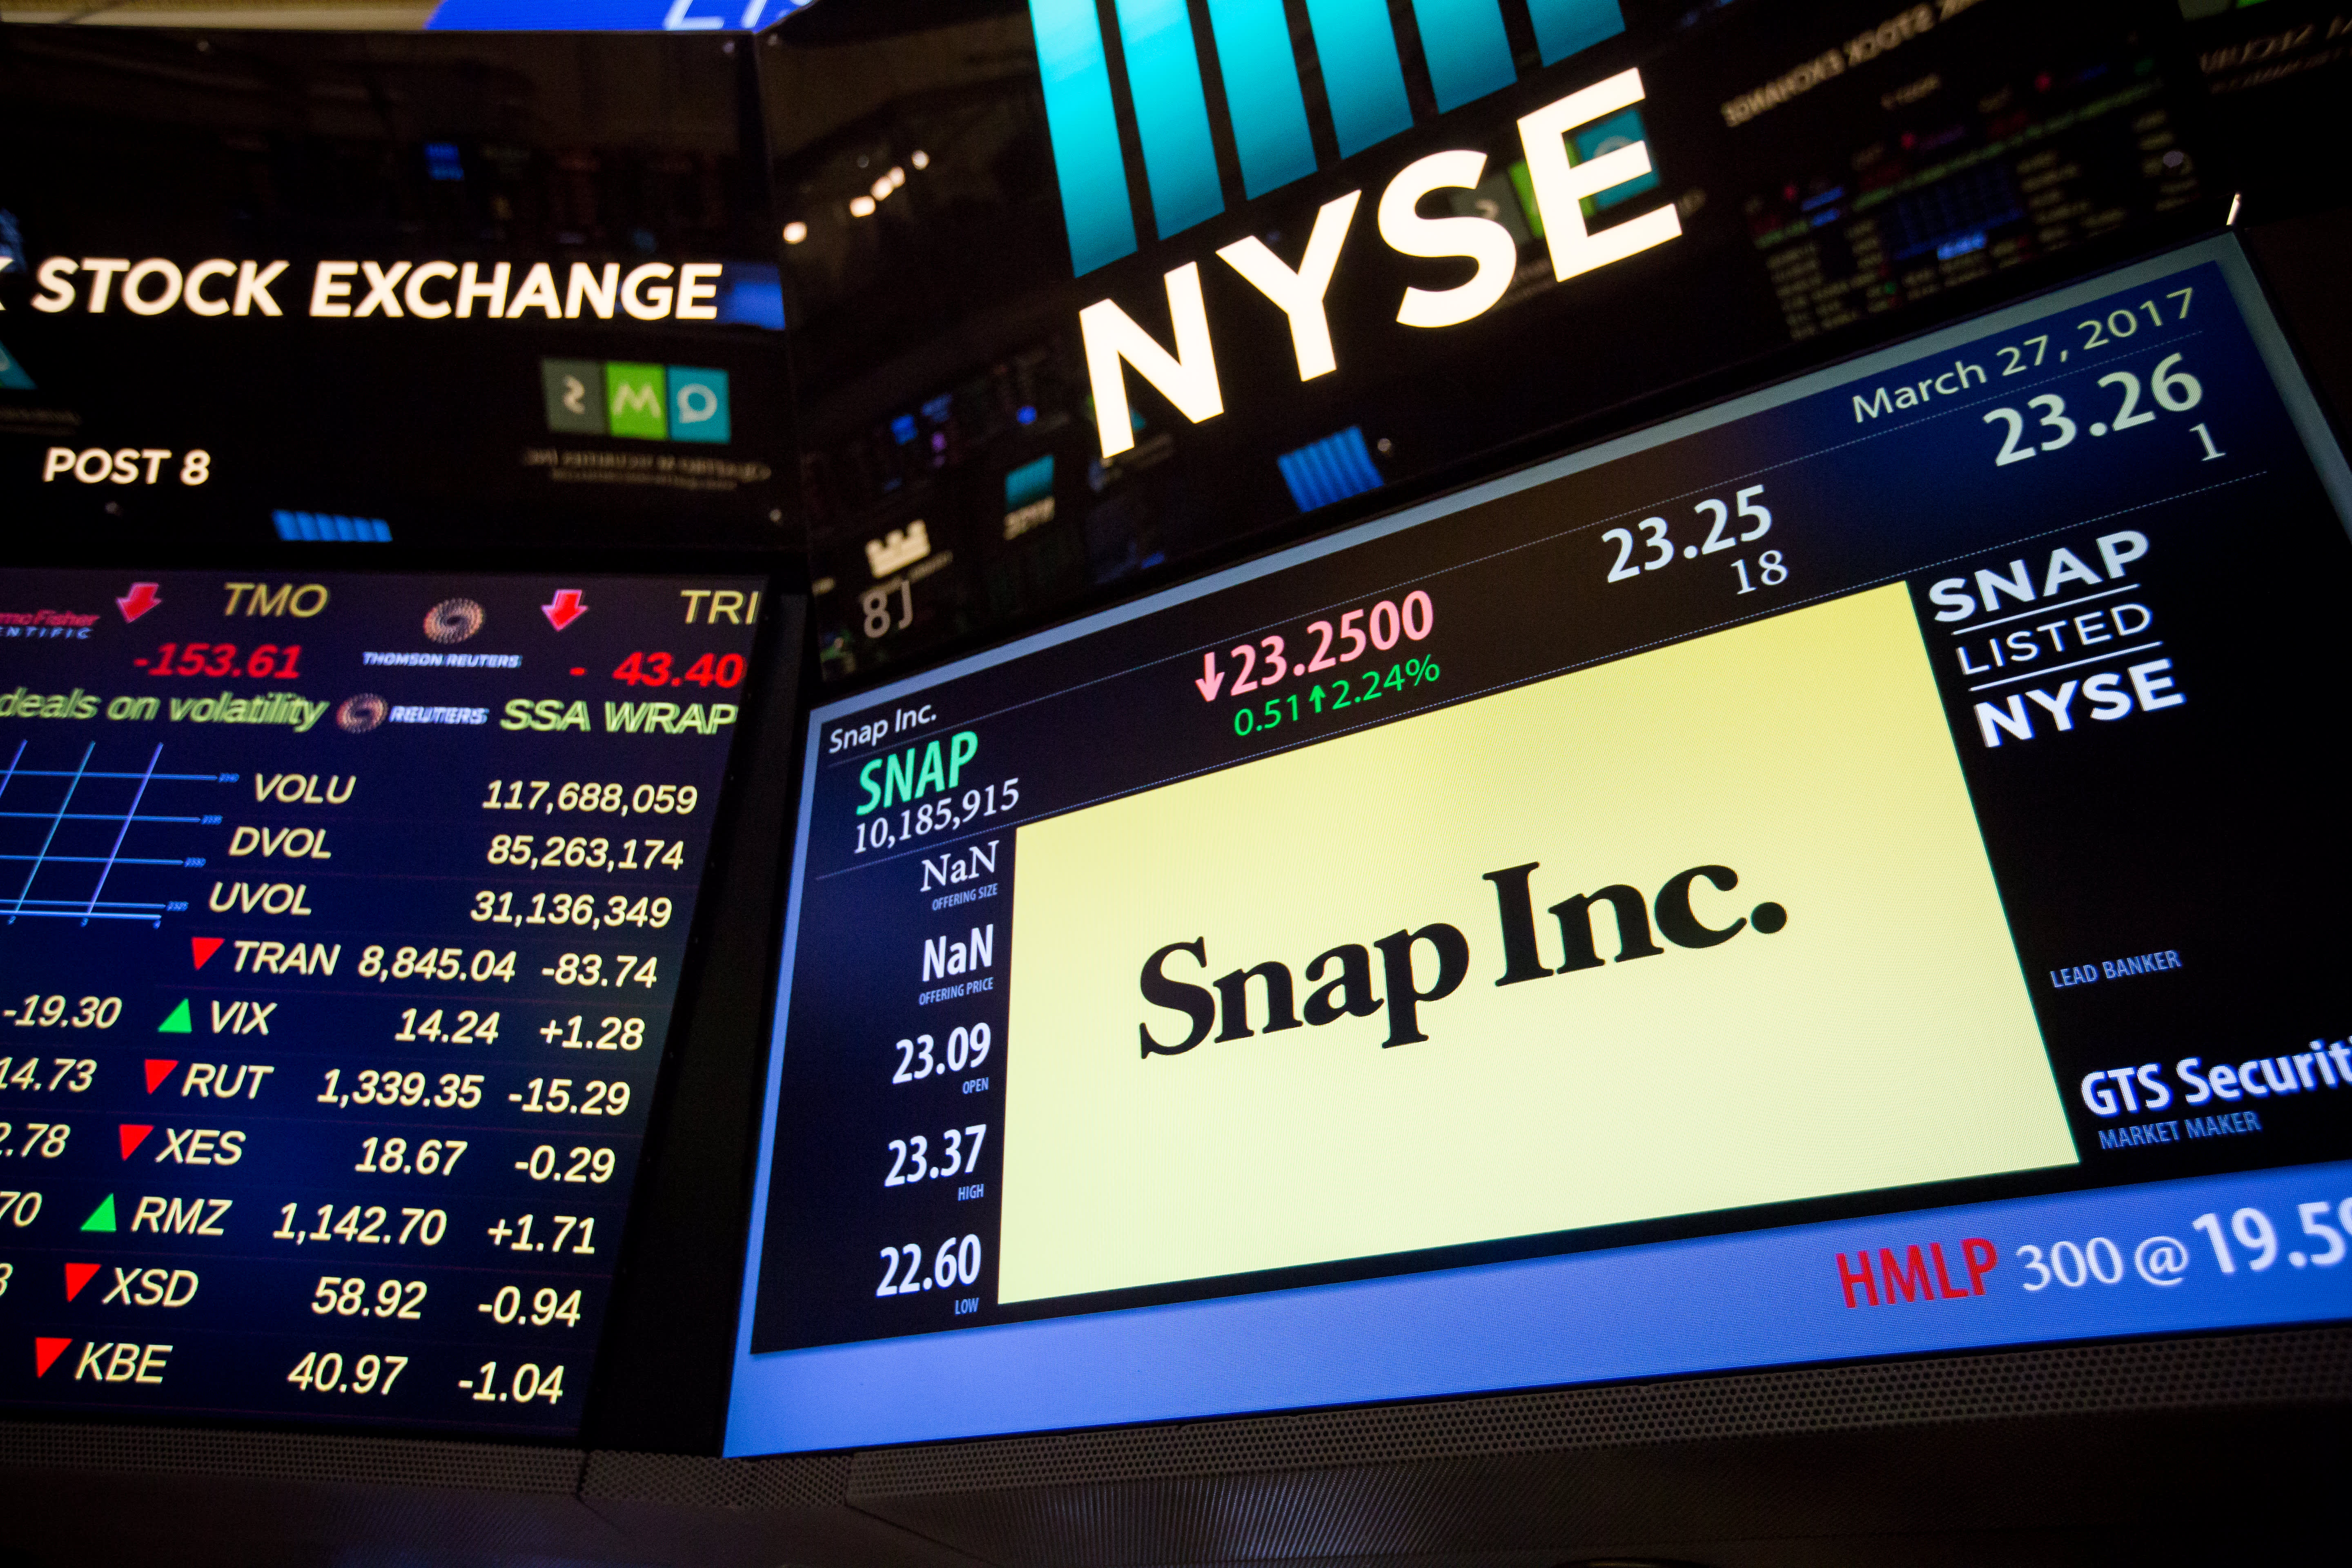 Snap upgraded to buy at Pivotal Research, shares jump